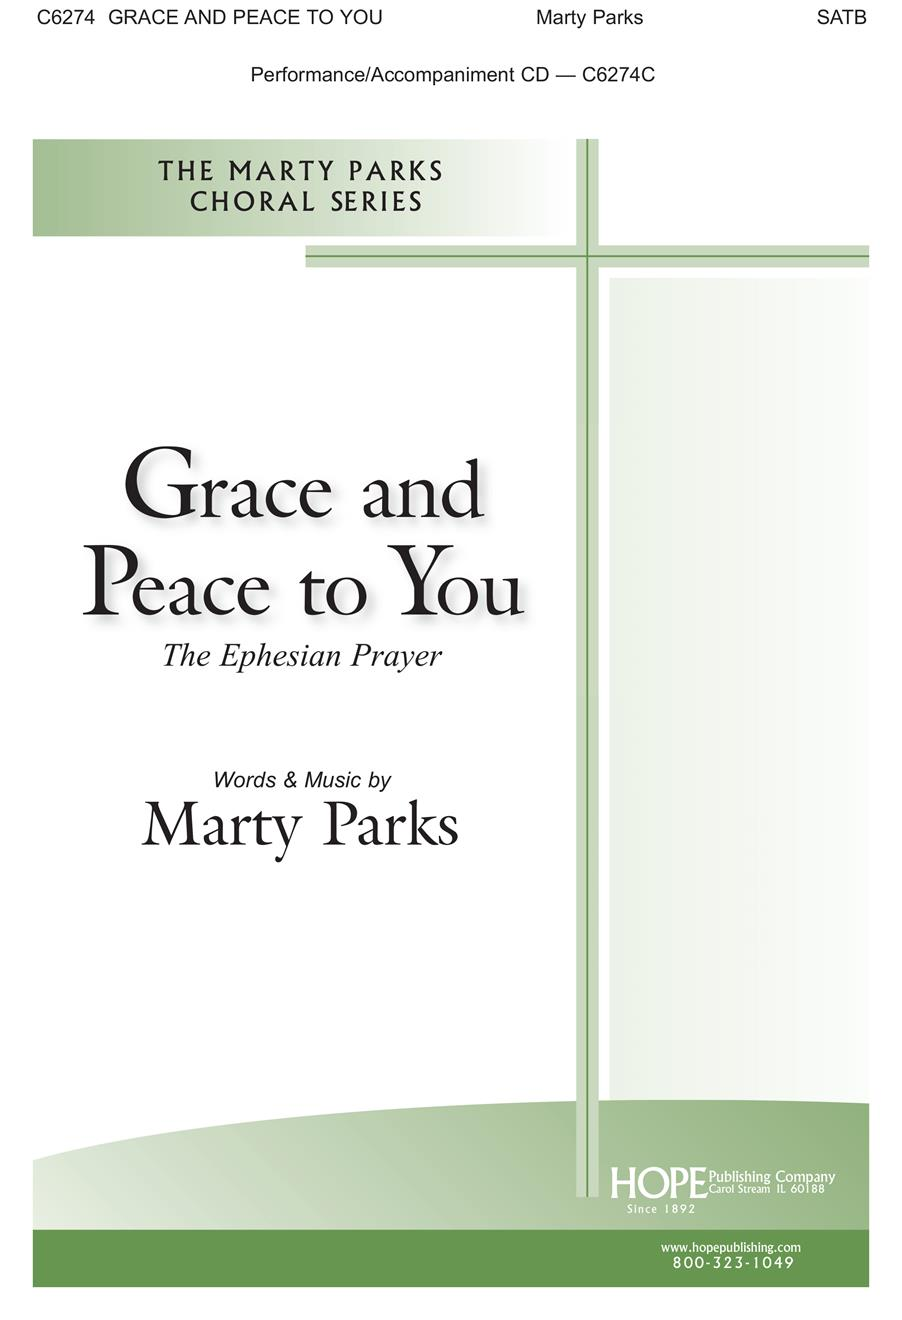 Grace and Peace to You - SATB Cover Image